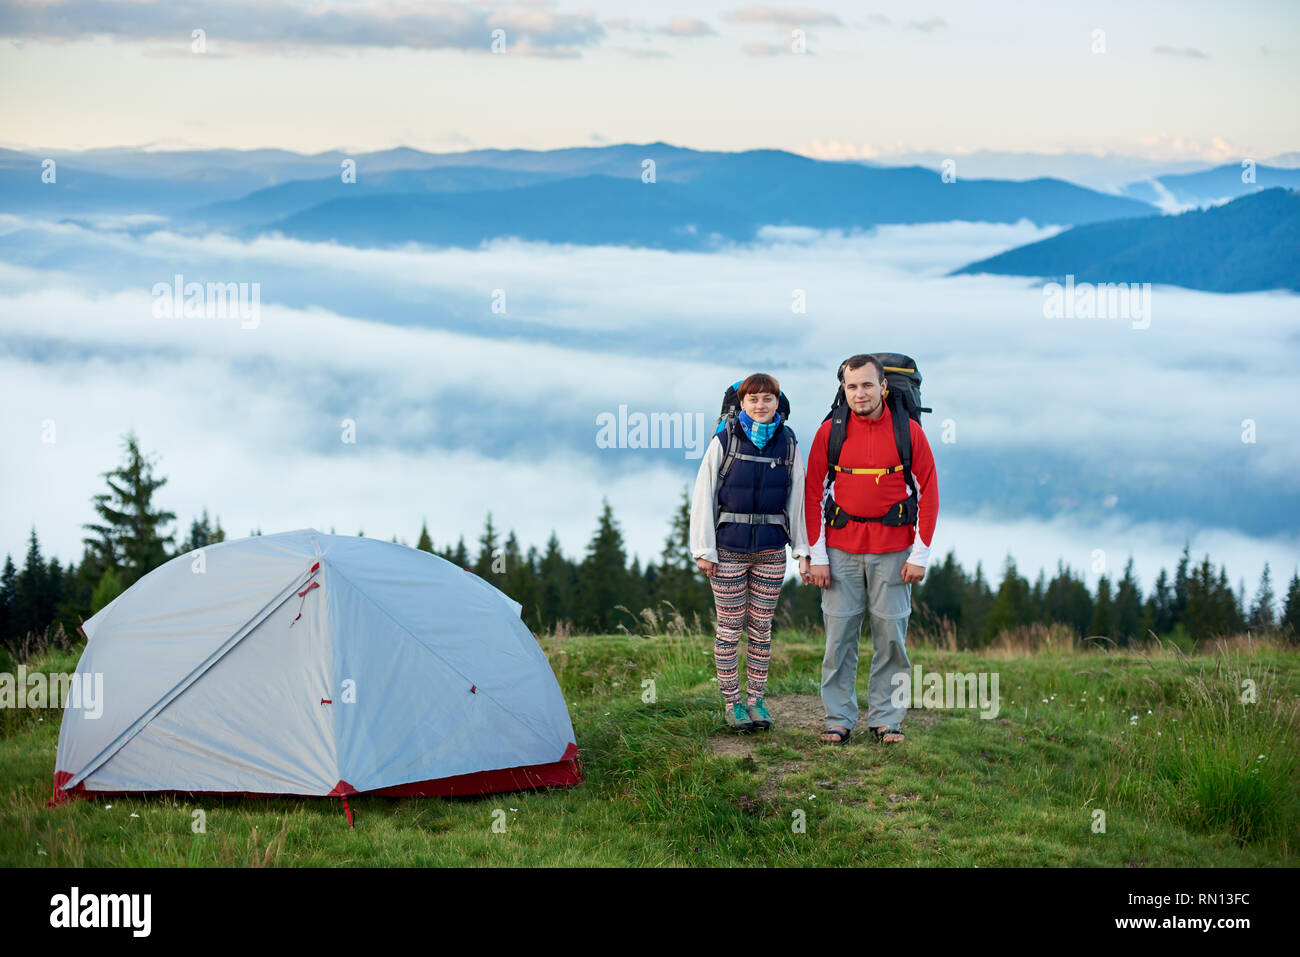 Pair of tourists with backpacks near the tent on the blurred background of the mighty mountains on which lies the fog. Concept of a healthy lifestyle - Stock Image